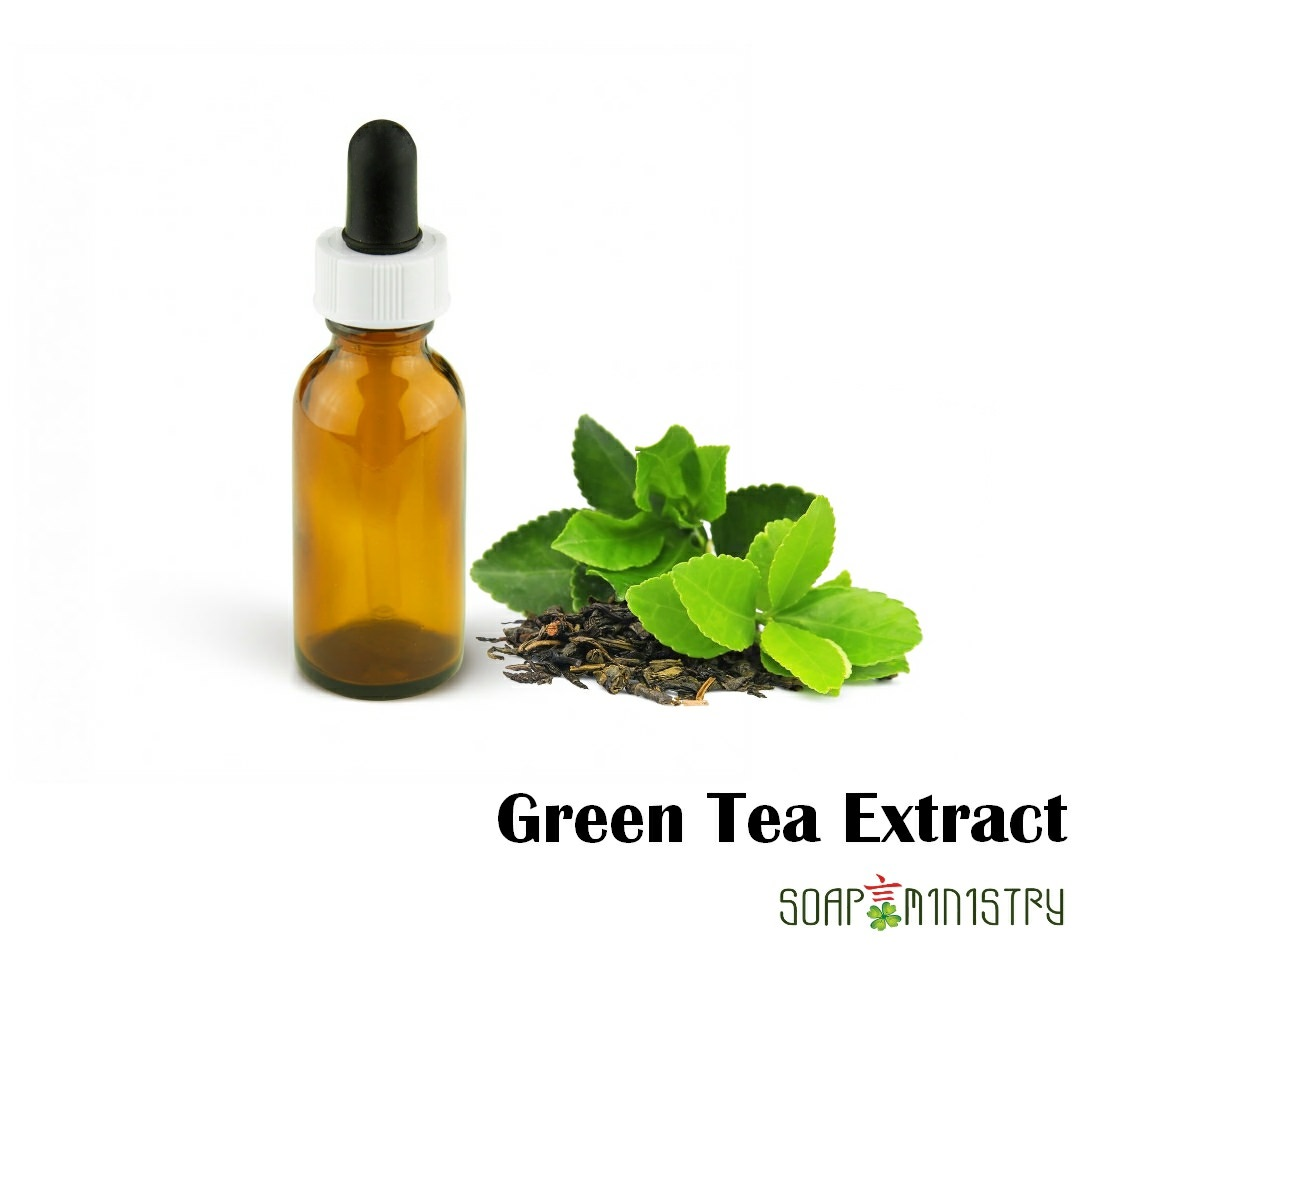 Green Tea Extract 100g